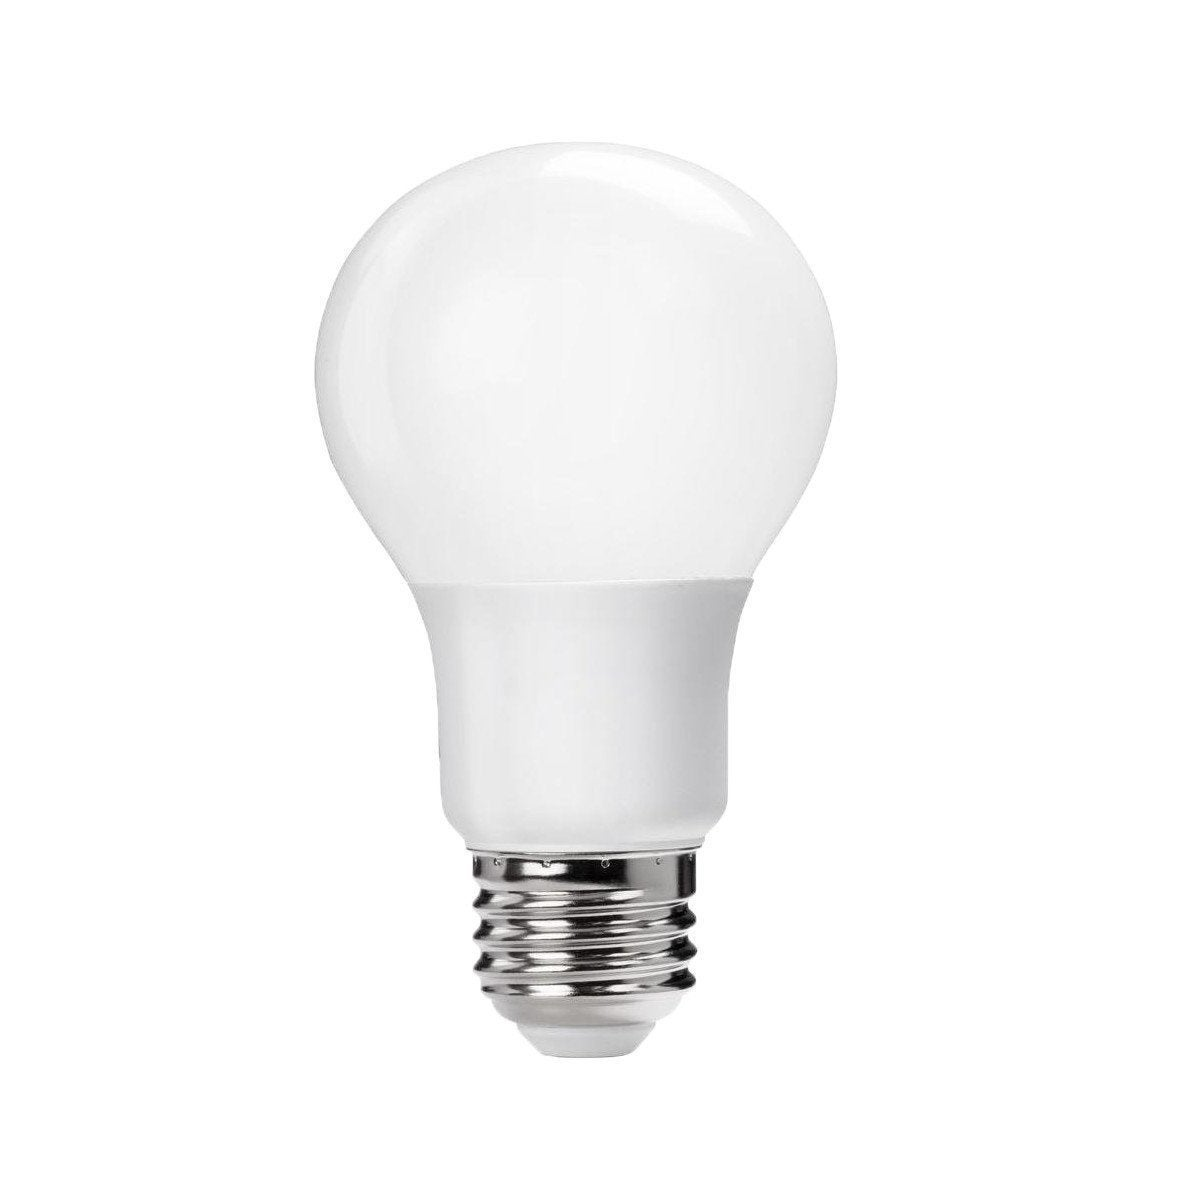 Goodlite 14W=100W Equivalent A19 Dimmable LED Light Bulb ...